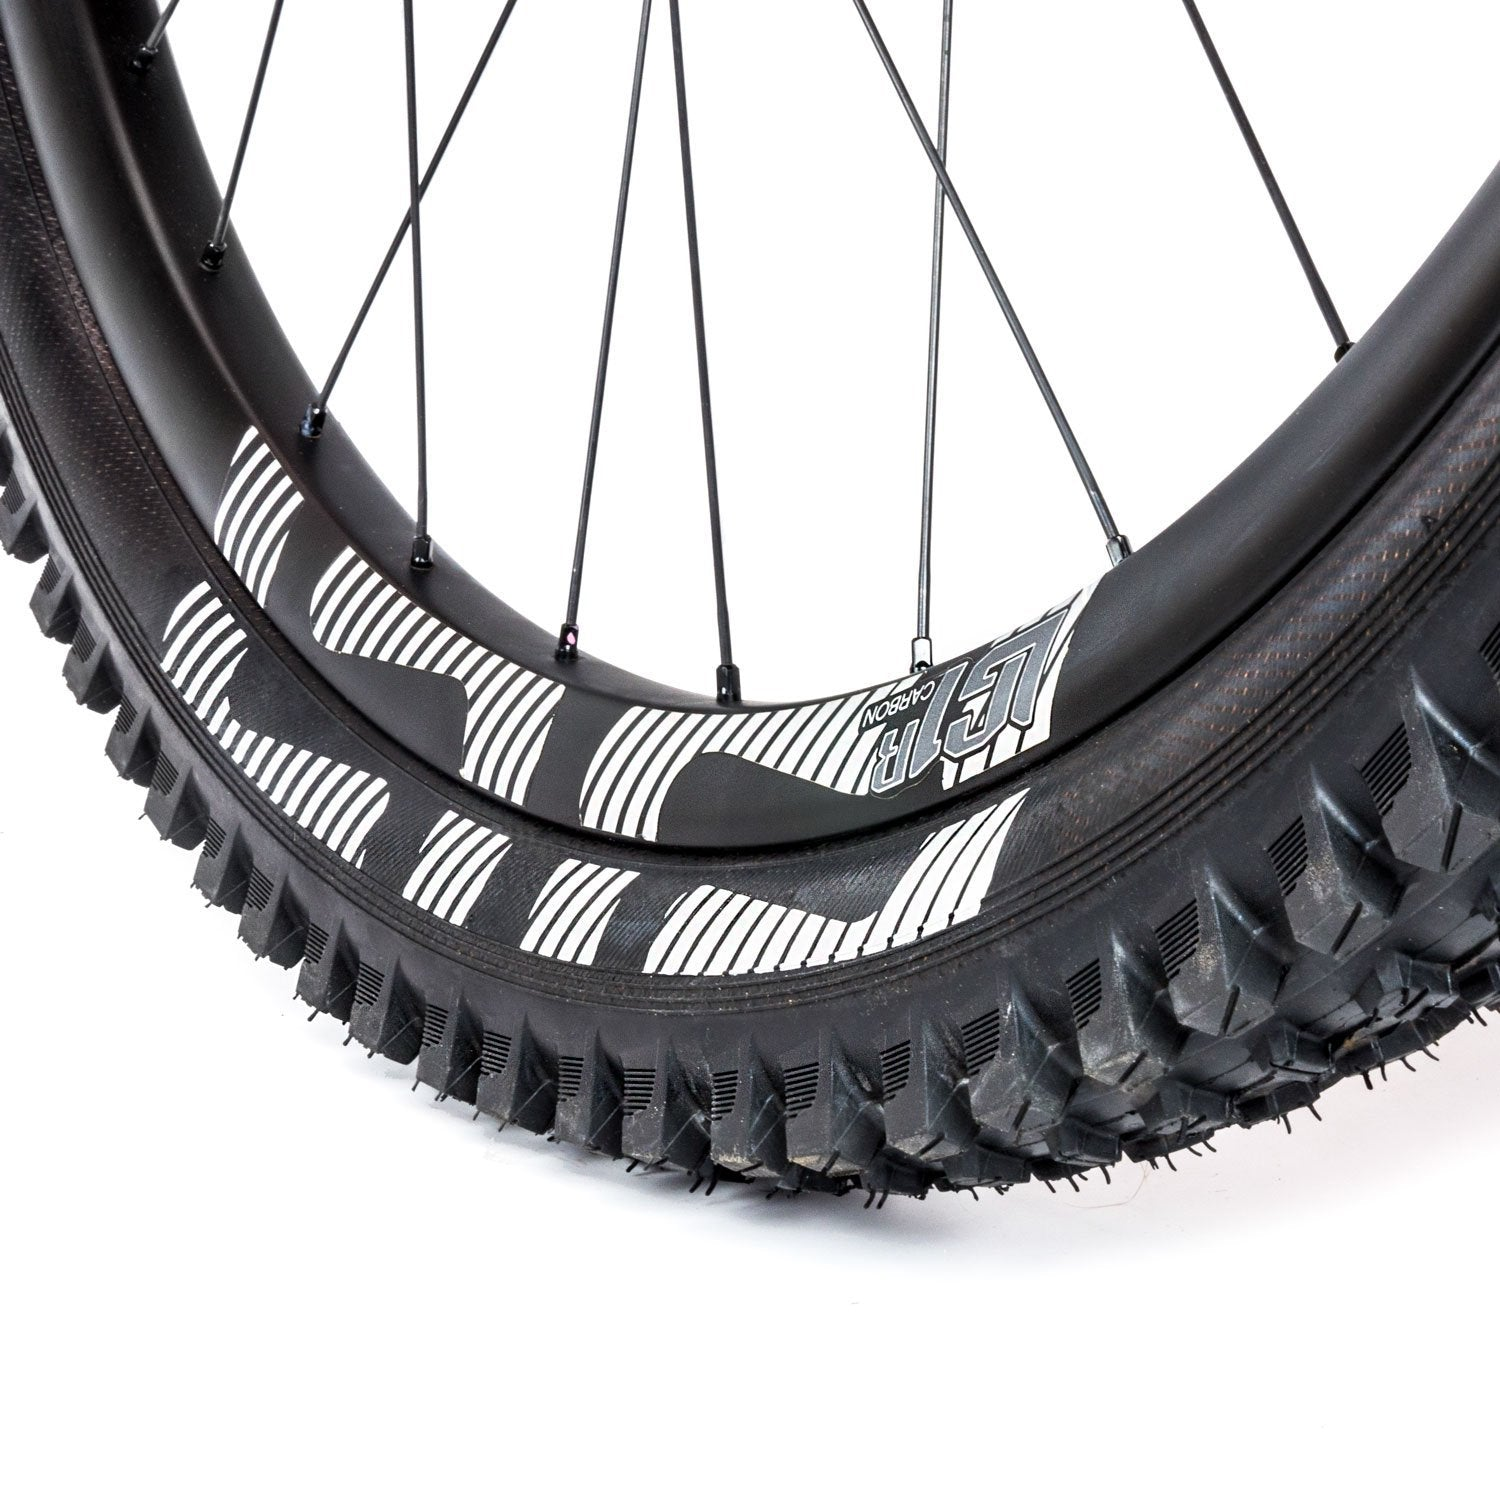 All-Terrain Downhill Tire - Discontinued